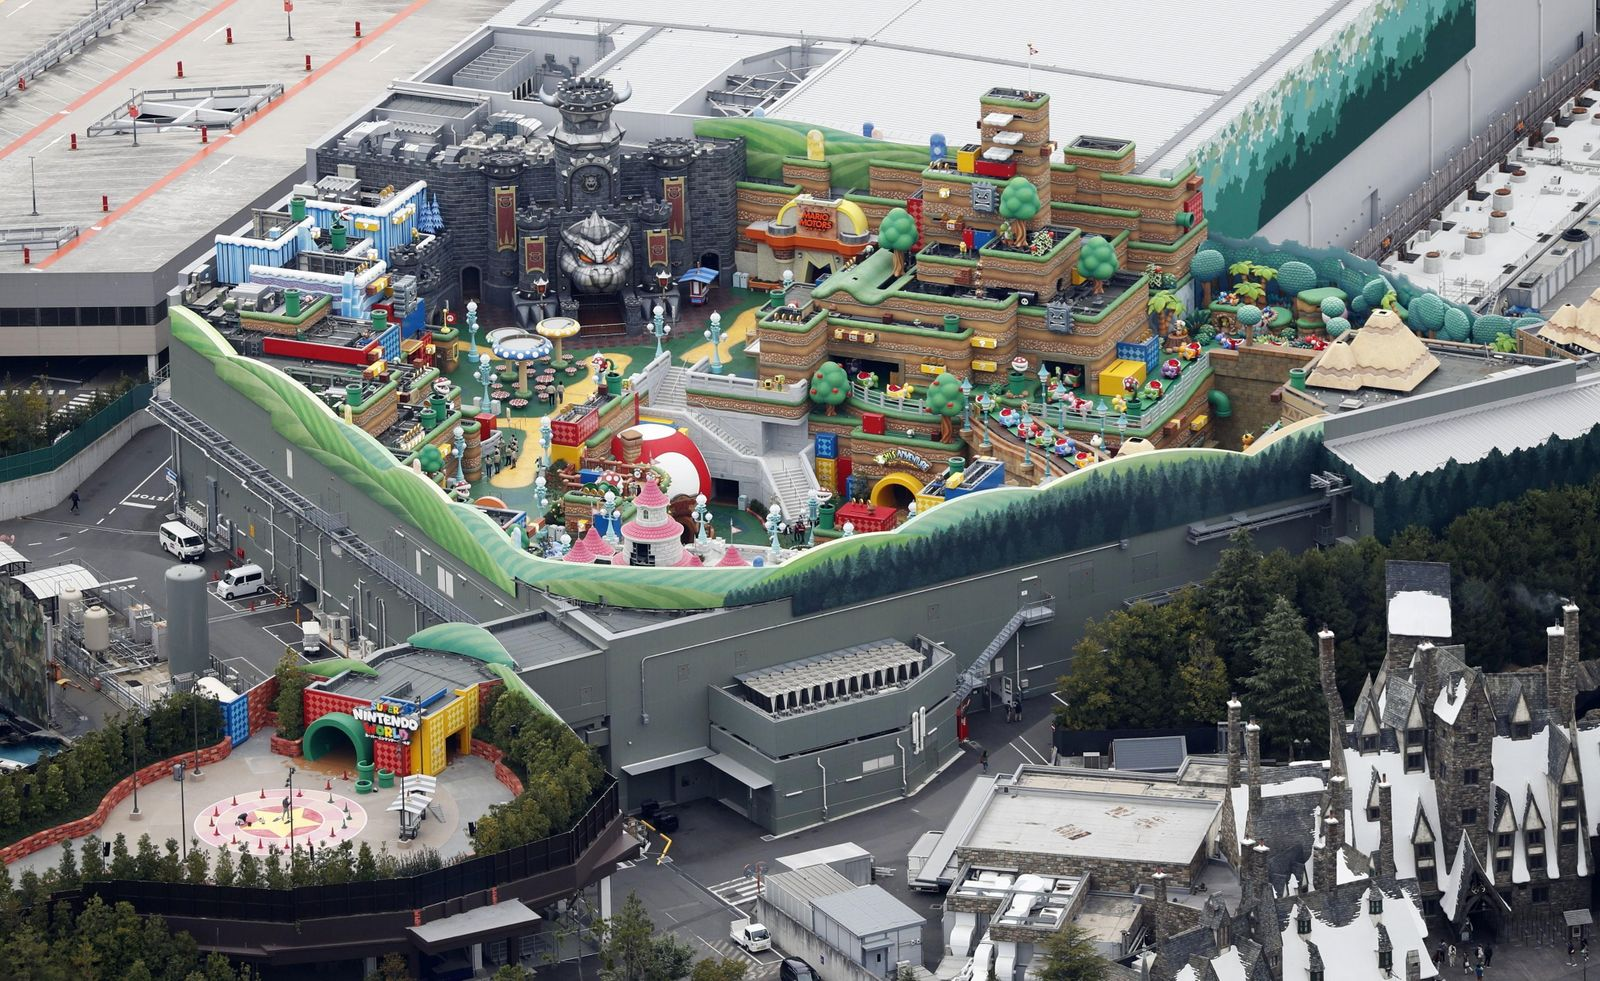 An aerial view shows Super Nintendo World at the Universal Studios Japan theme park in Osaka, western Japan